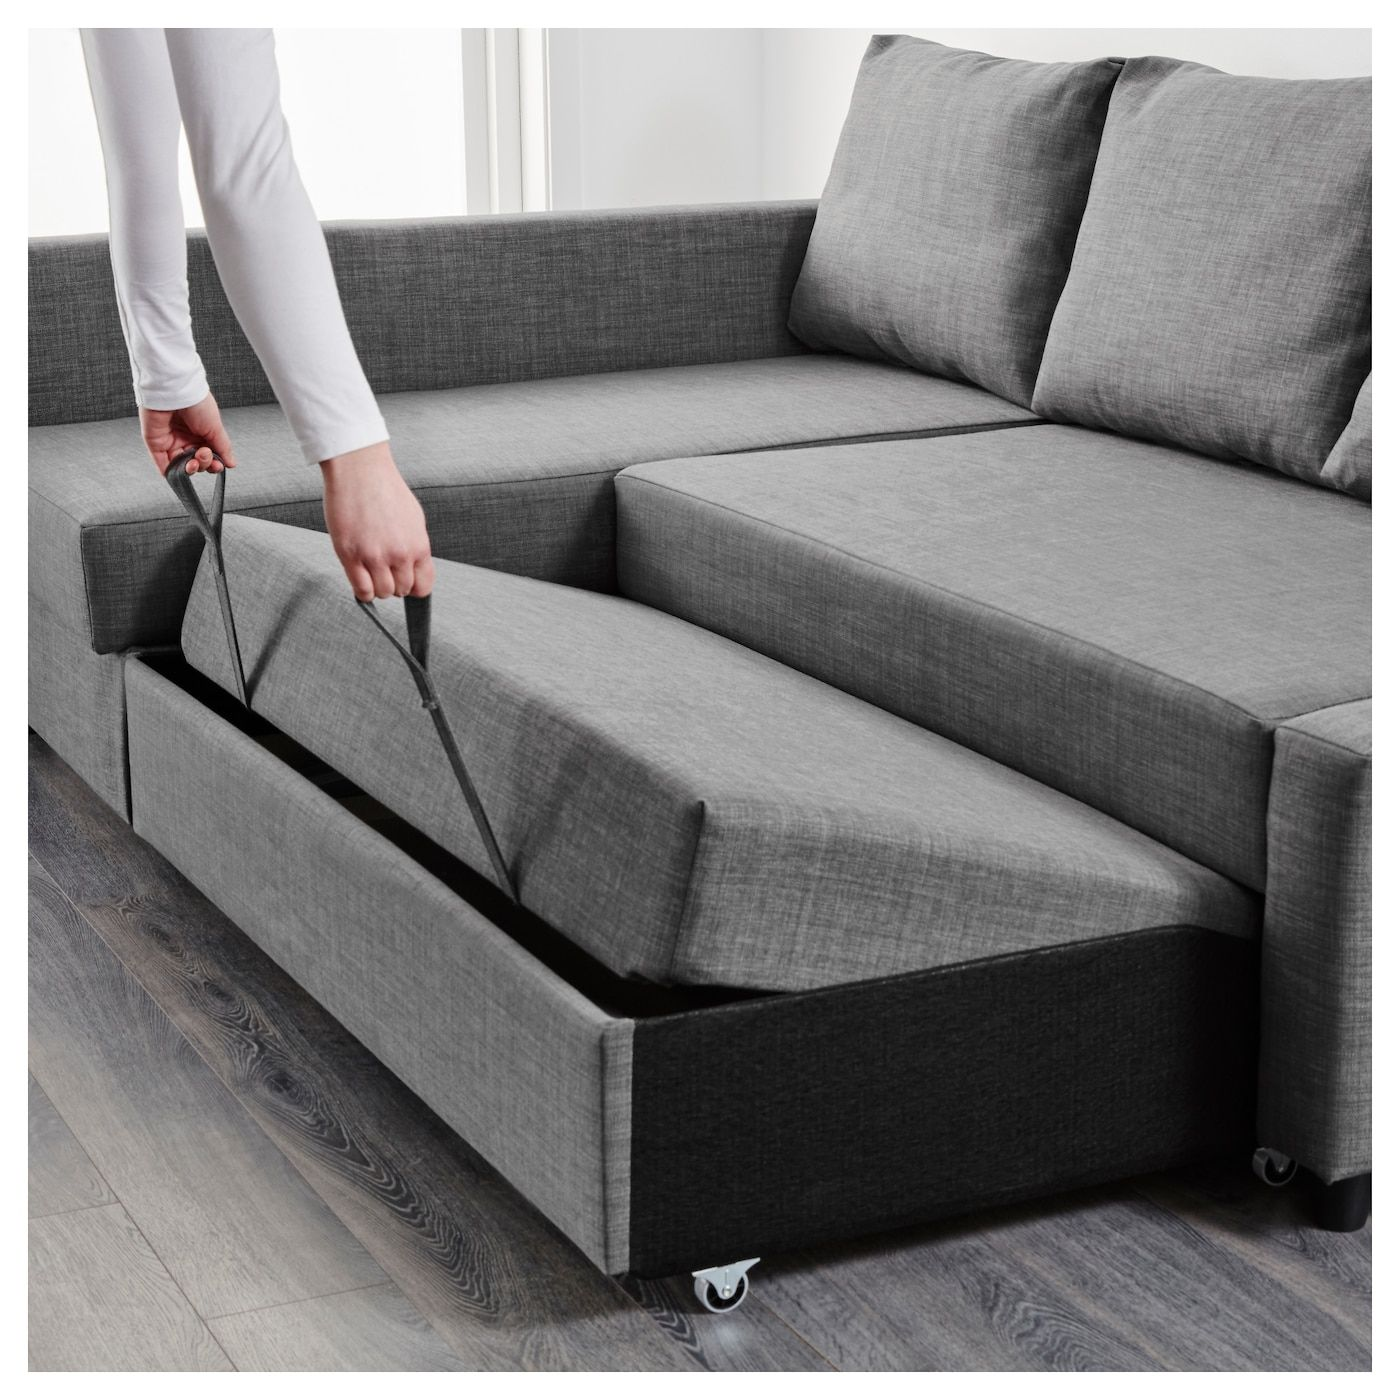 Friheten Sleeper Sectional 3 Seat W Storage Skiftebo Dark Gray Sofa Bed With Storage Corner Sofa Bed With Storage Sofa Bed With Chaise